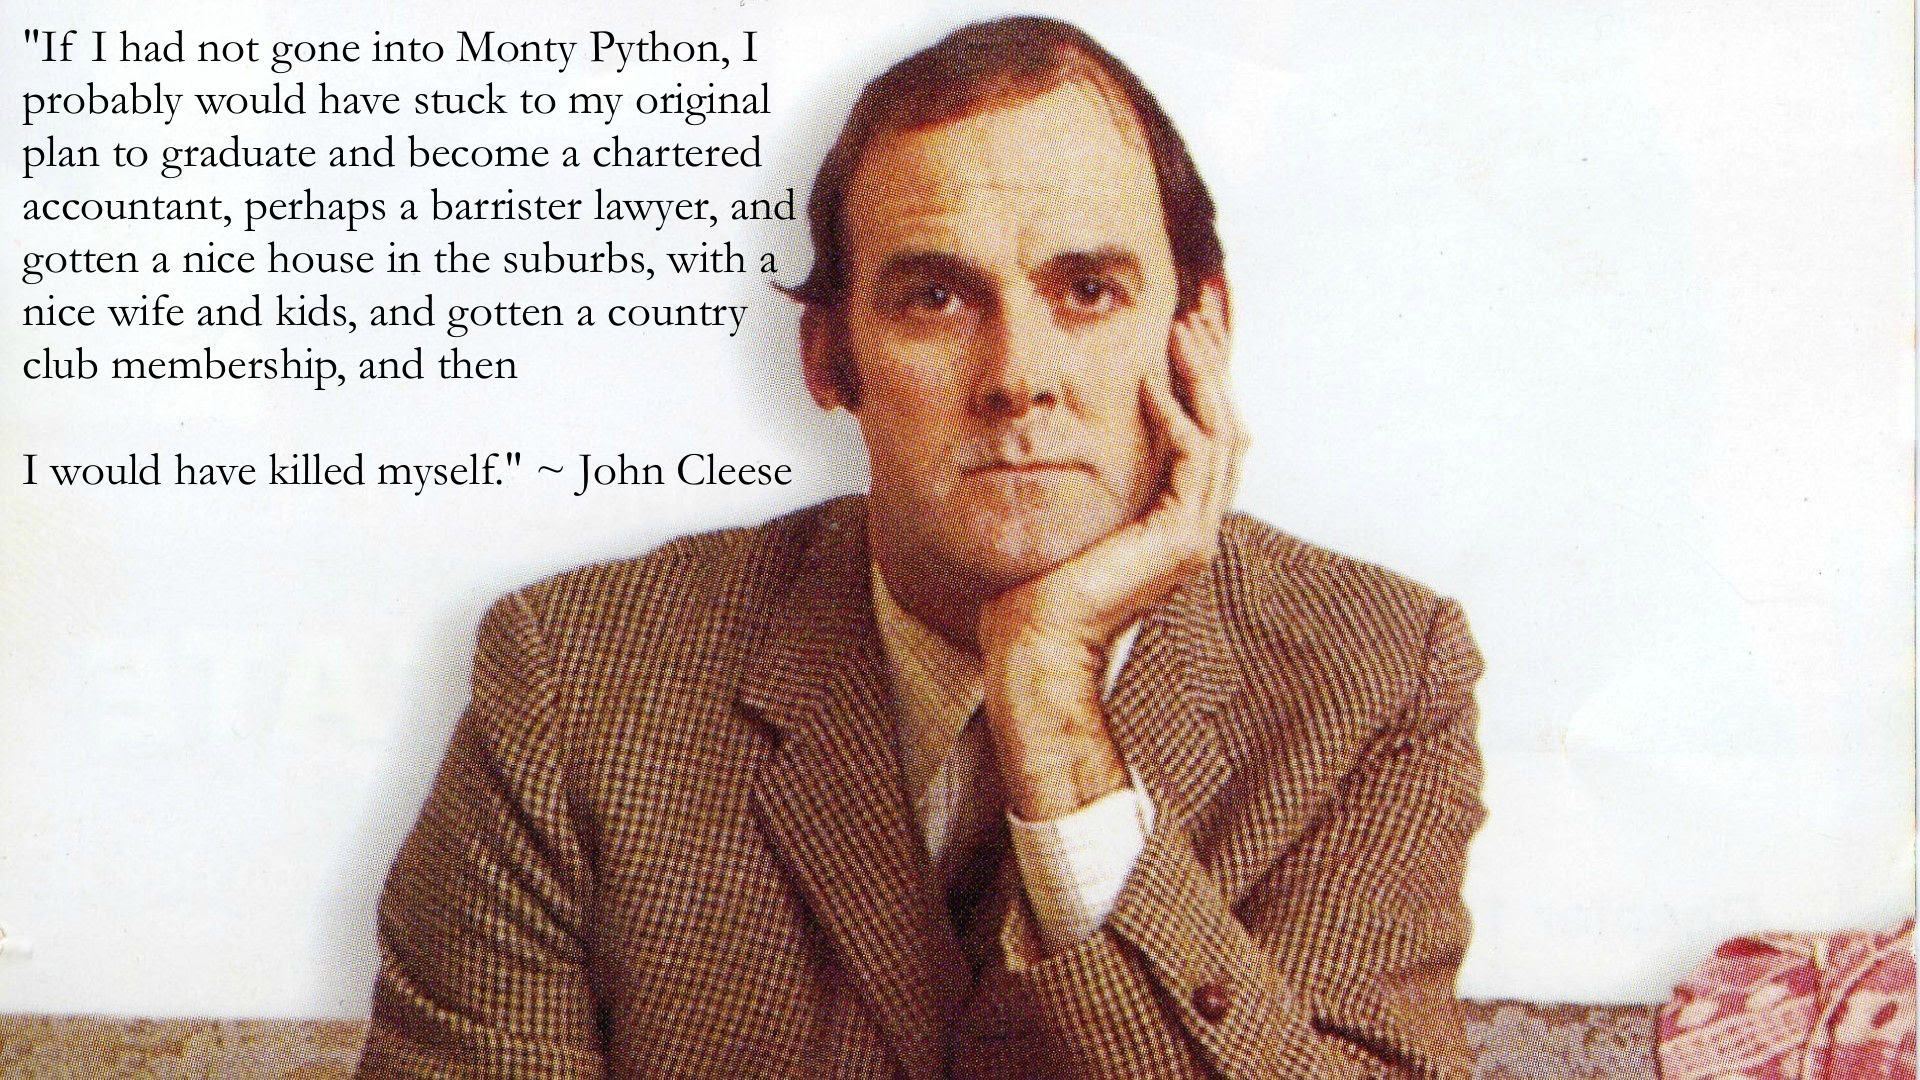 If I Had Not Gone Into Monty Python John Cleese 1920x1080